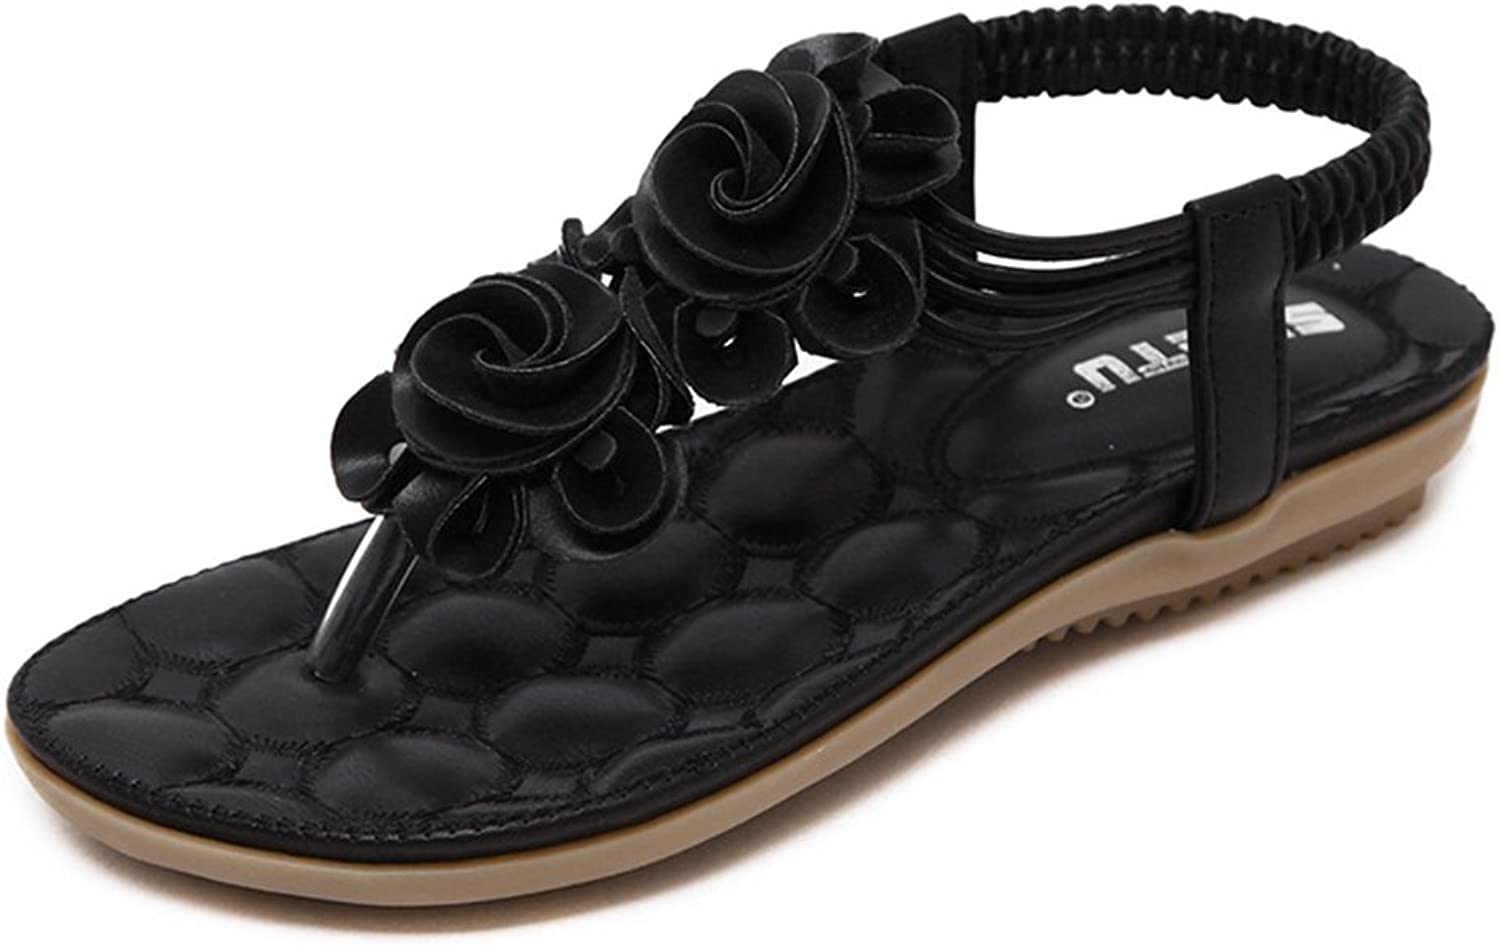 Tuoup Floral Leather Thong Walking Women's Sandals Sandles